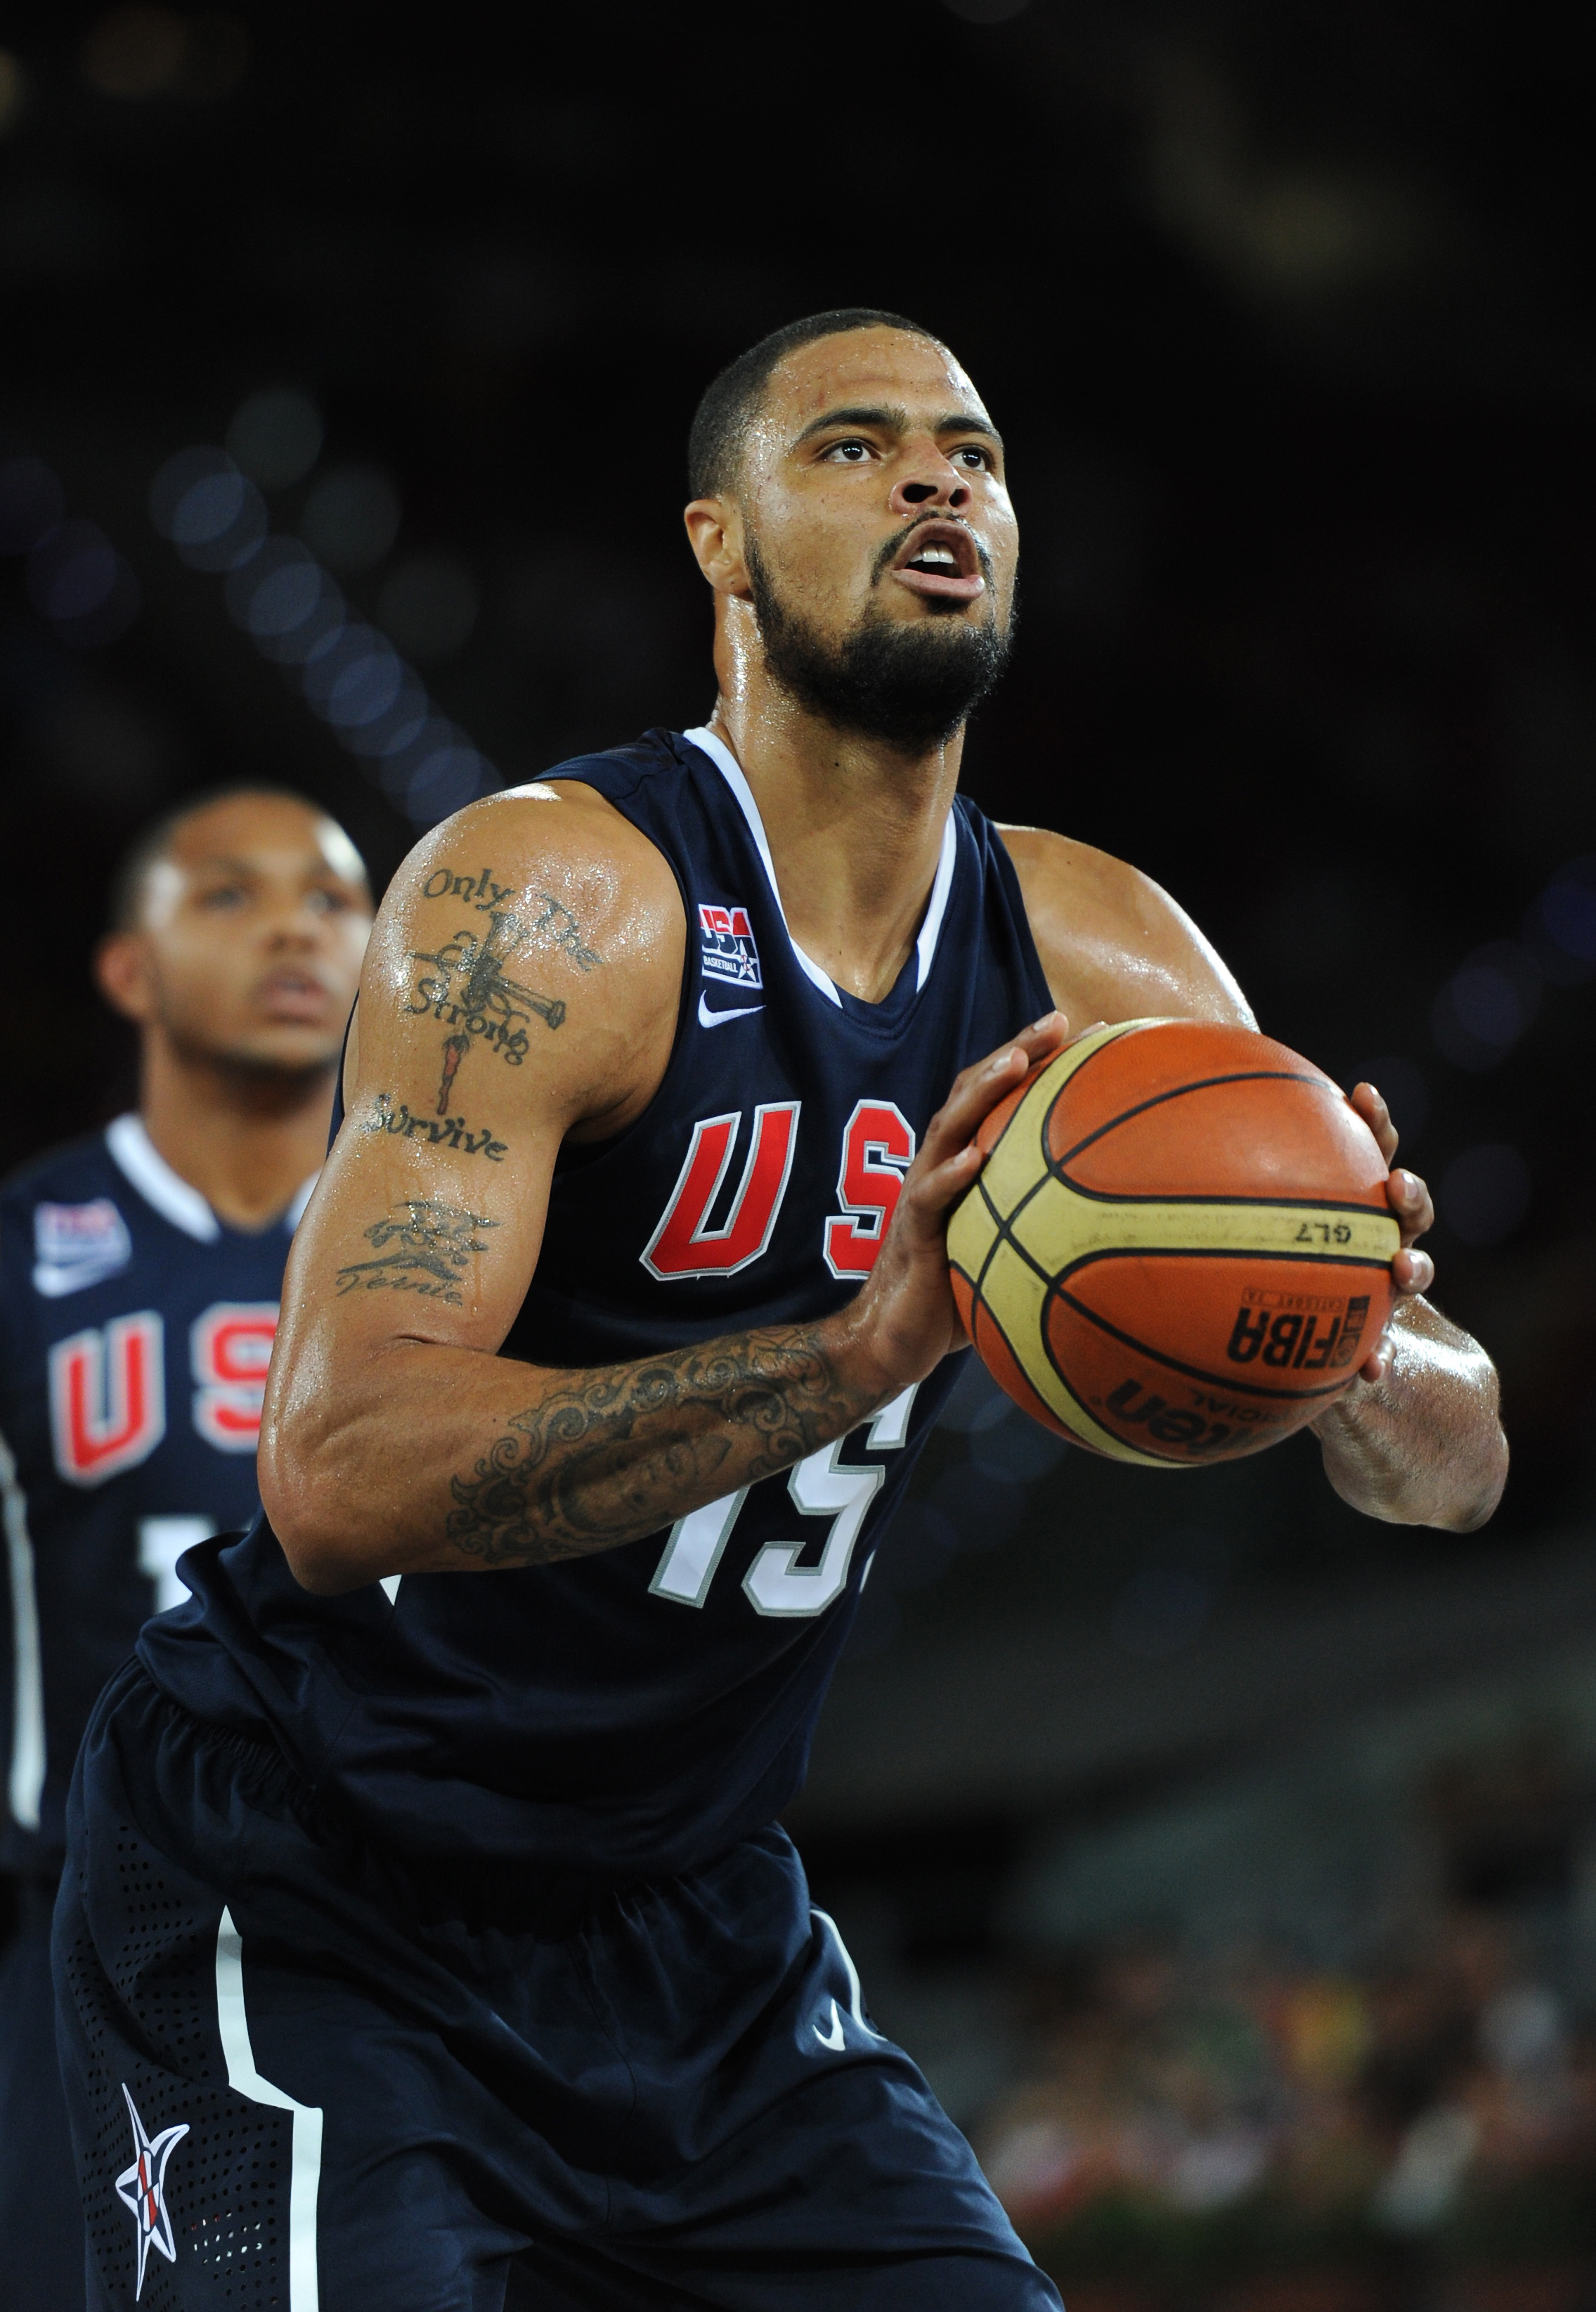 MADRID, SPAIN - AUGUST 22:  Tyson Chandler of the USA concentrates on a free throw during a friendly basketball game between Spain and the USA at La Caja Magica on August 22, 2010 in Madrid, Spain.  (Photo by Jasper Juinen/Getty Images)